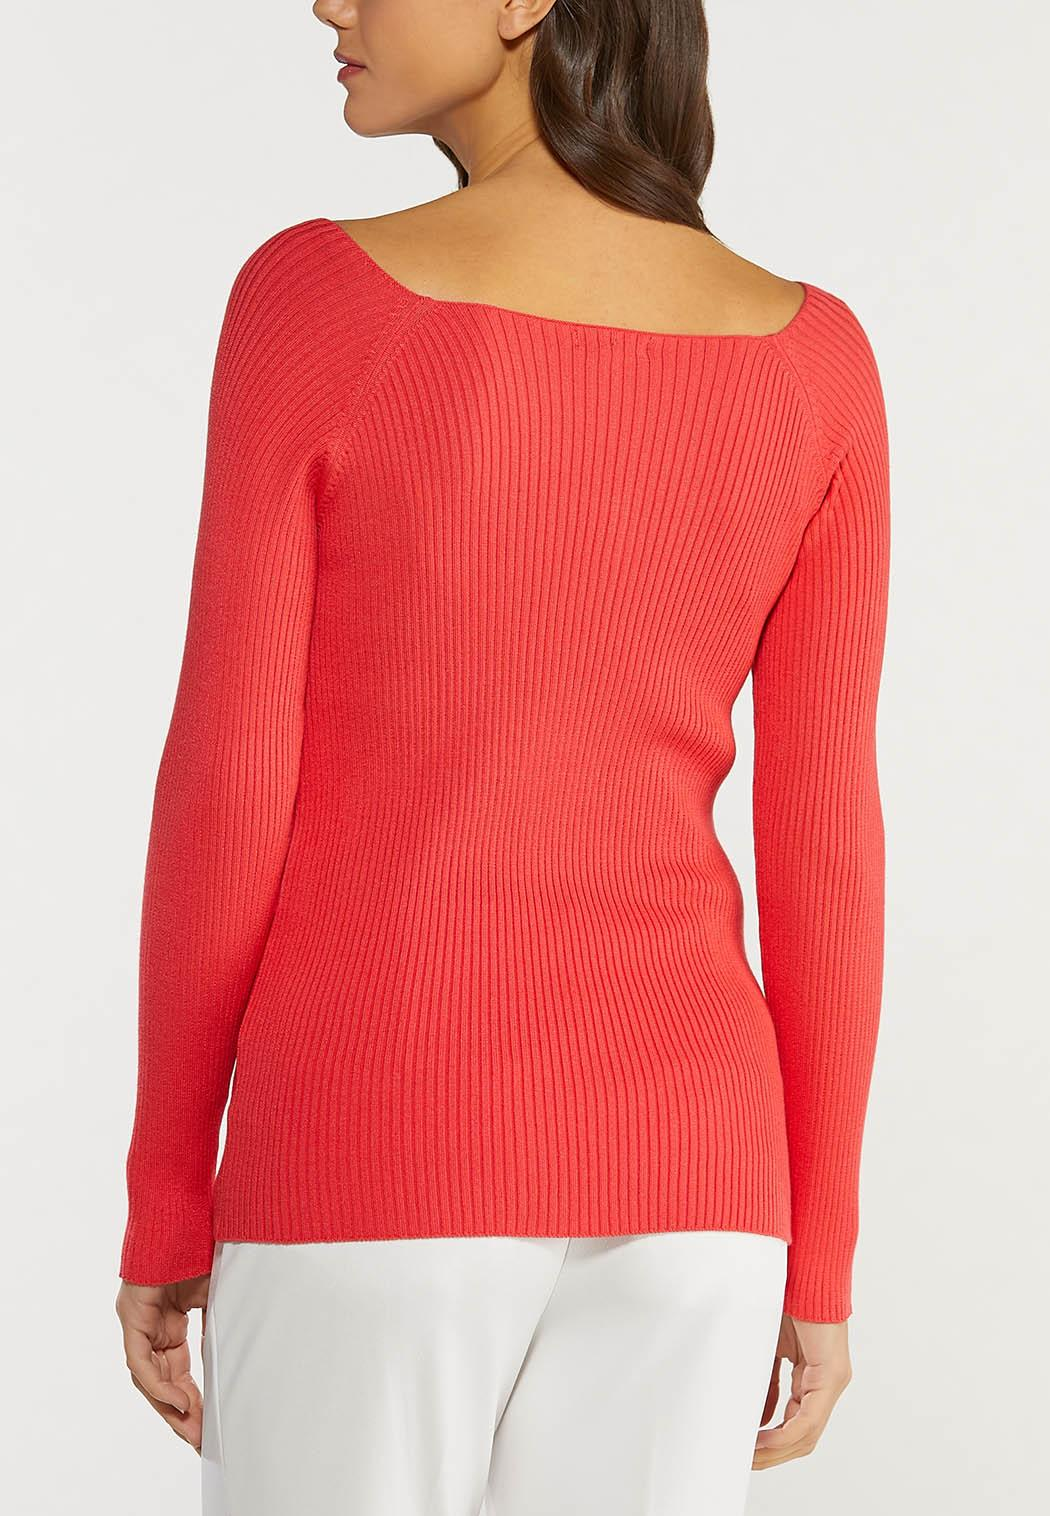 Plus Size Boat Neck Sweater (Item #44492753)